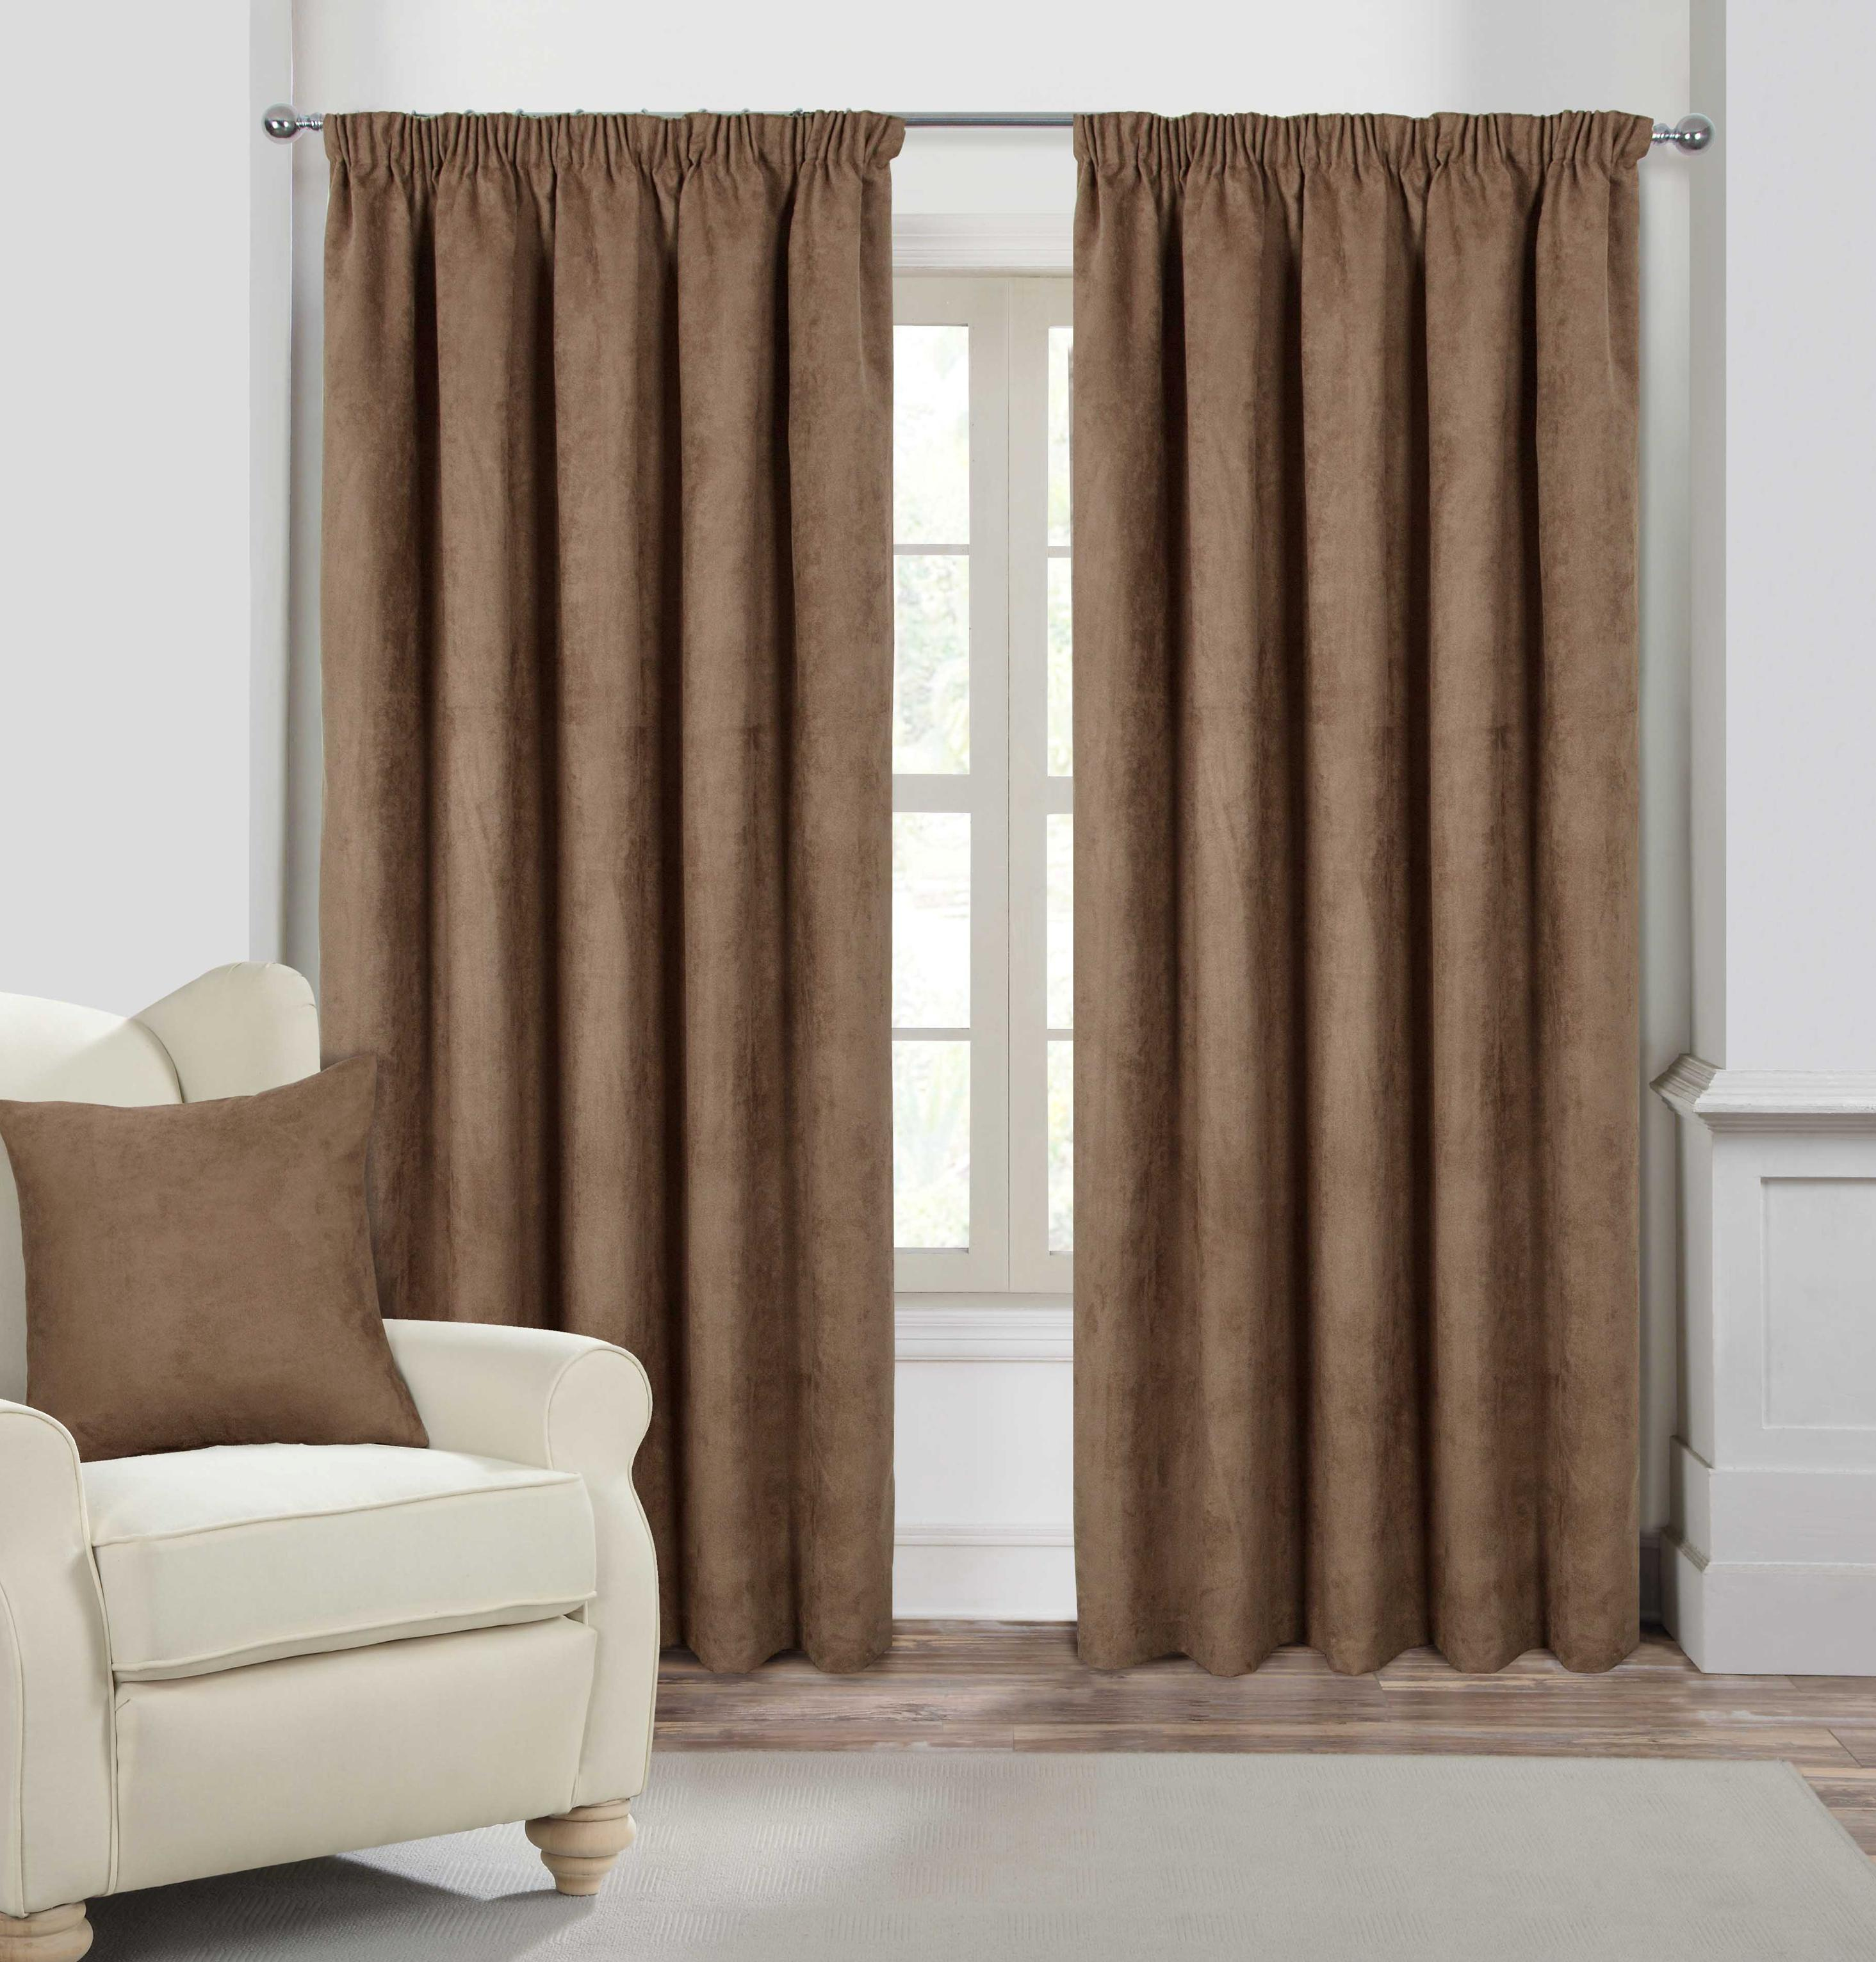 faux home mink silver taped curtains pleat tape at suede curtain product pencil